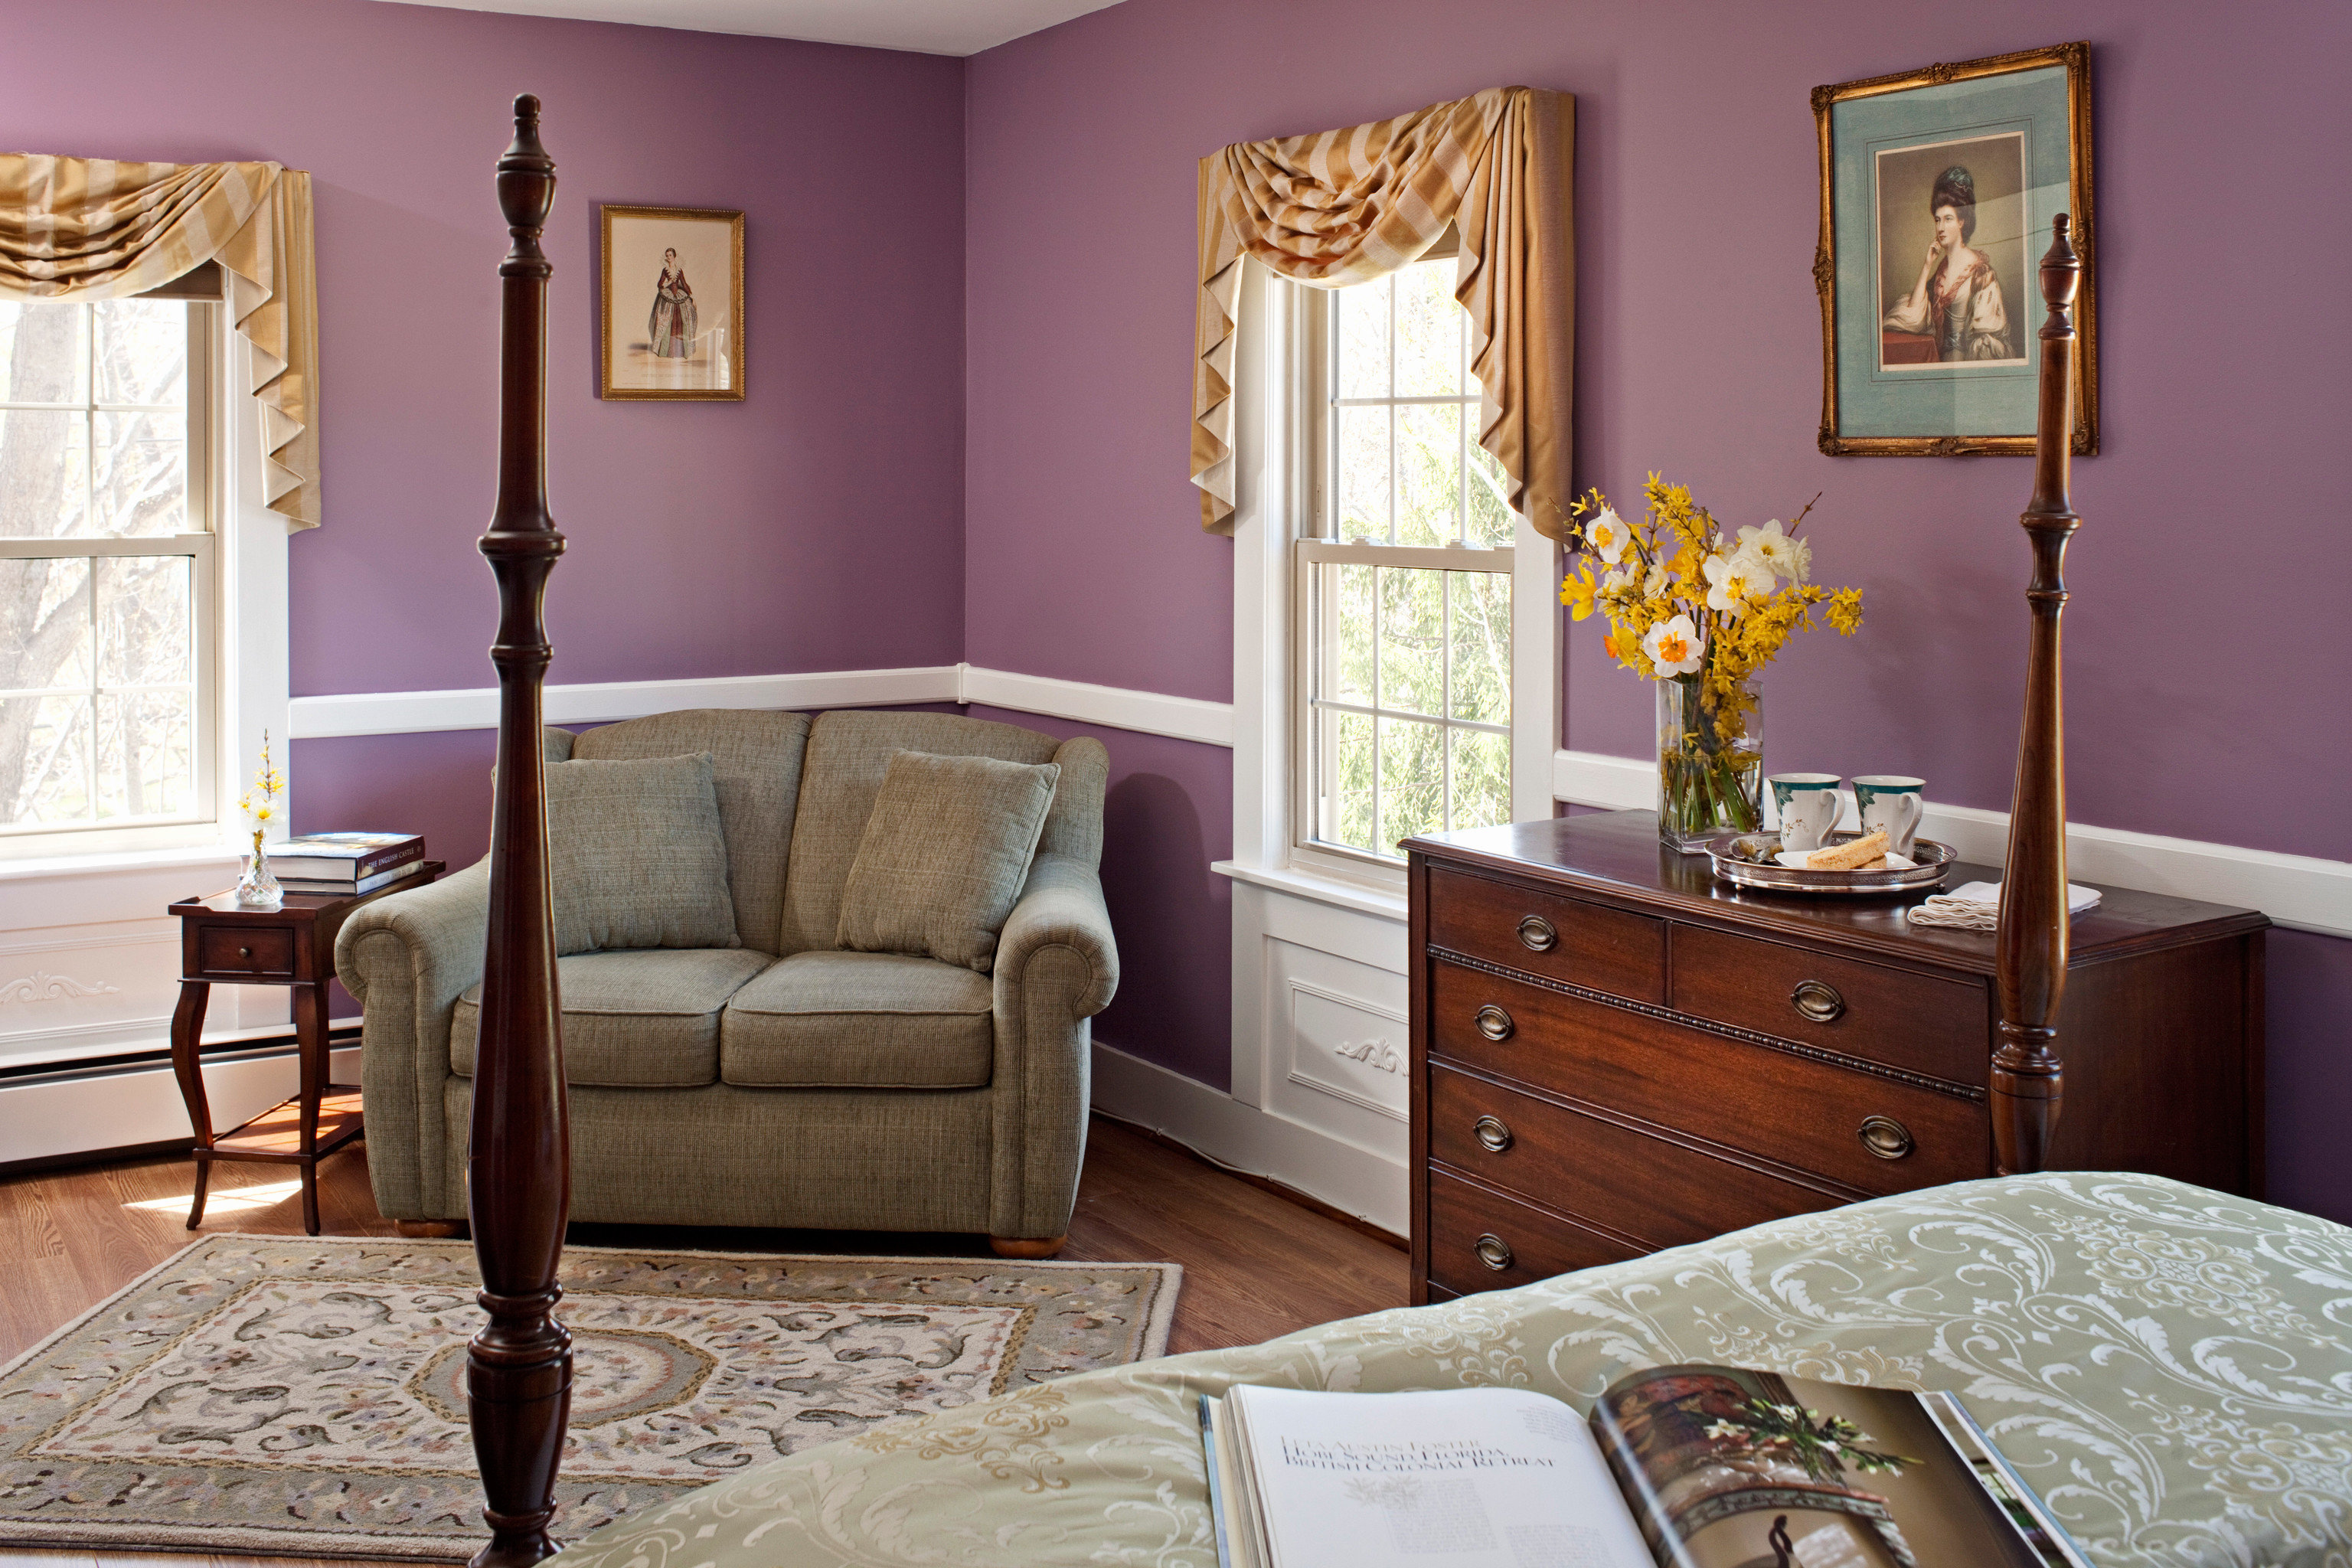 B&B Bedroom Country Historic Lounge property living room home hardwood cottage